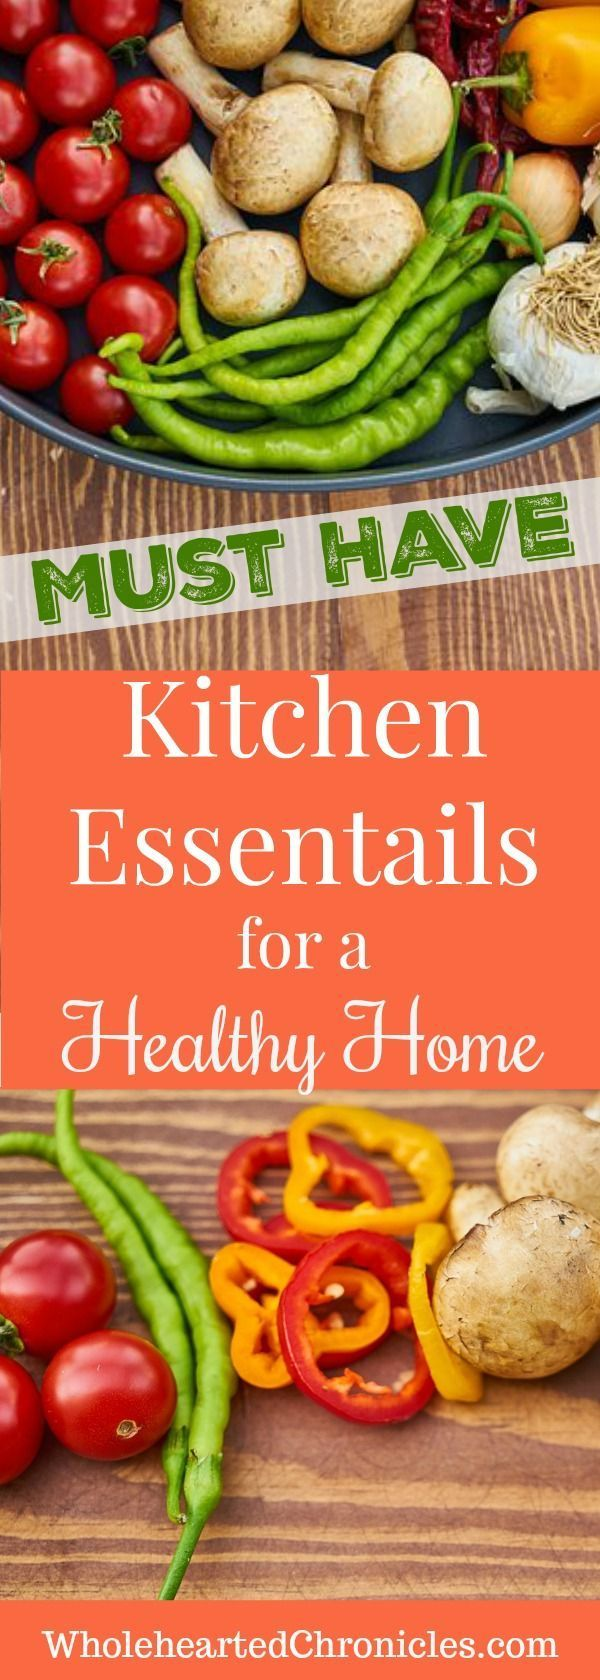 After changing my eating habits I found cooking quite time consuming. This list of kitchen essentials has come to my rescue. I can live a healthy lifestyle and save time, which means more time spent with my family! #healthyfamily #cleaneating #plantbased #vegan #healthyeating #loseweight #fitness